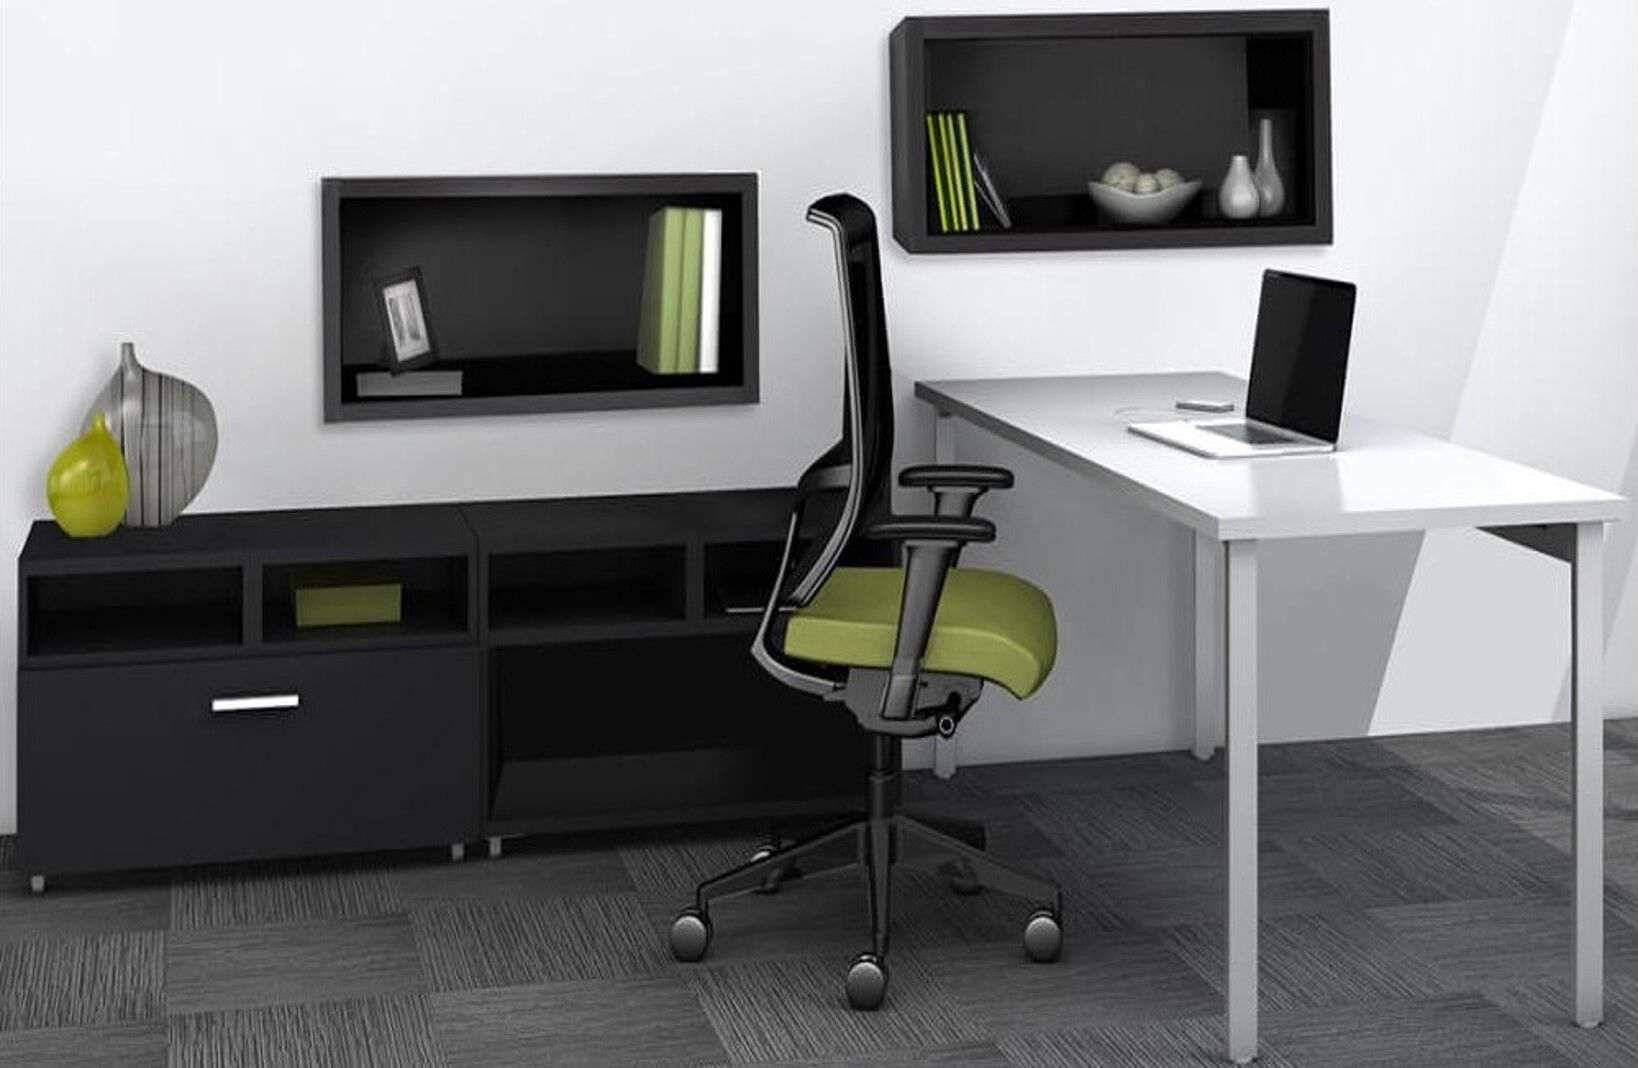 Lshaped desks l shaped table desk_preview